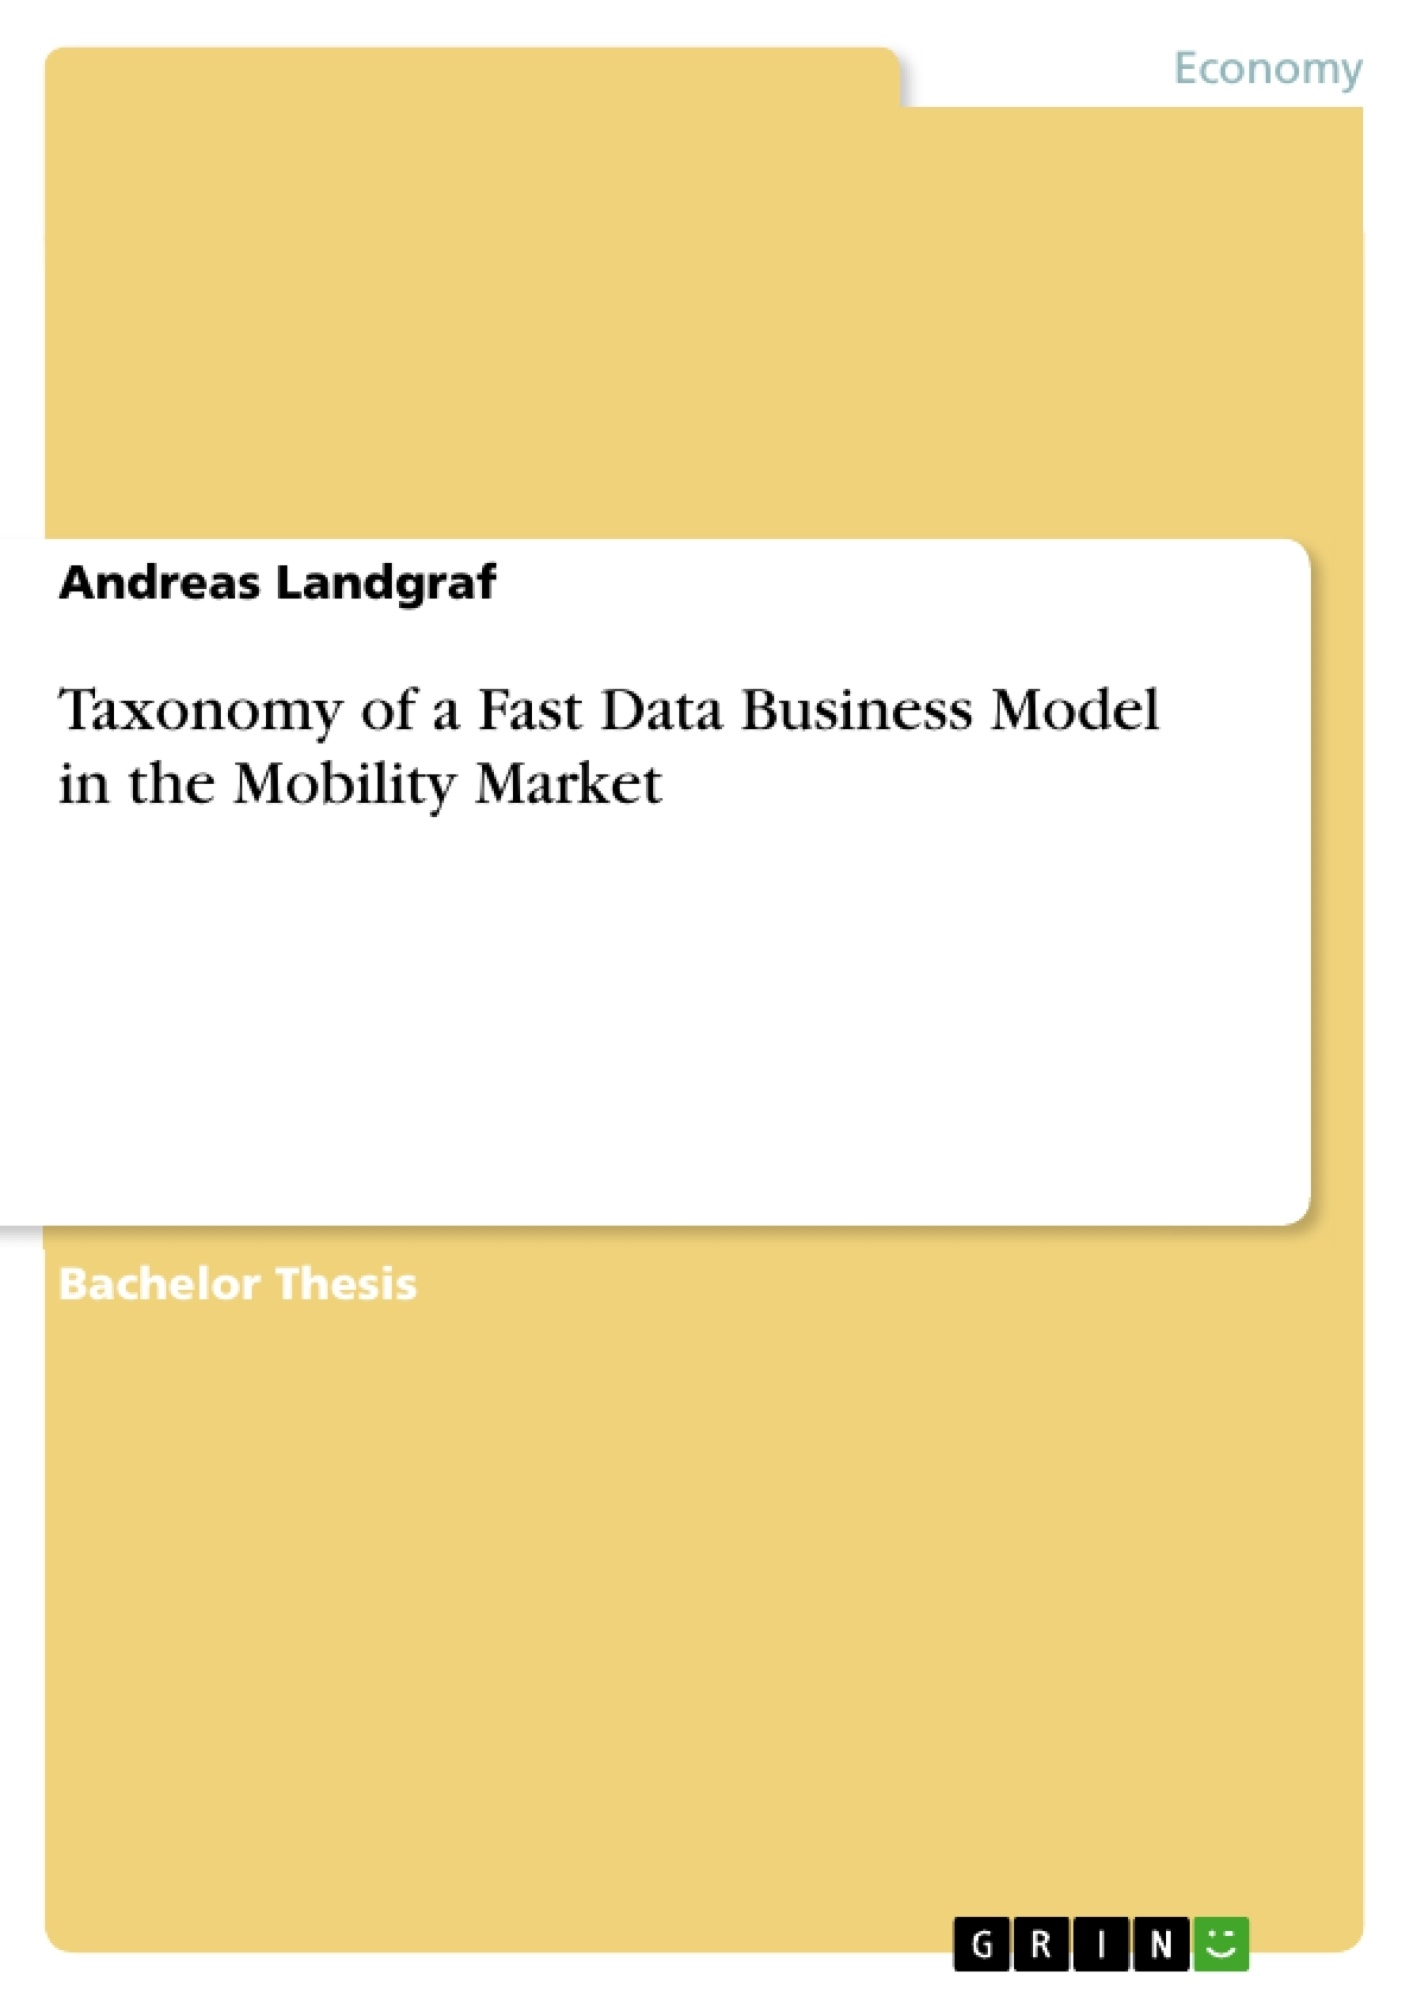 Title: Taxonomy of a Fast Data Business Model in the Mobility Market